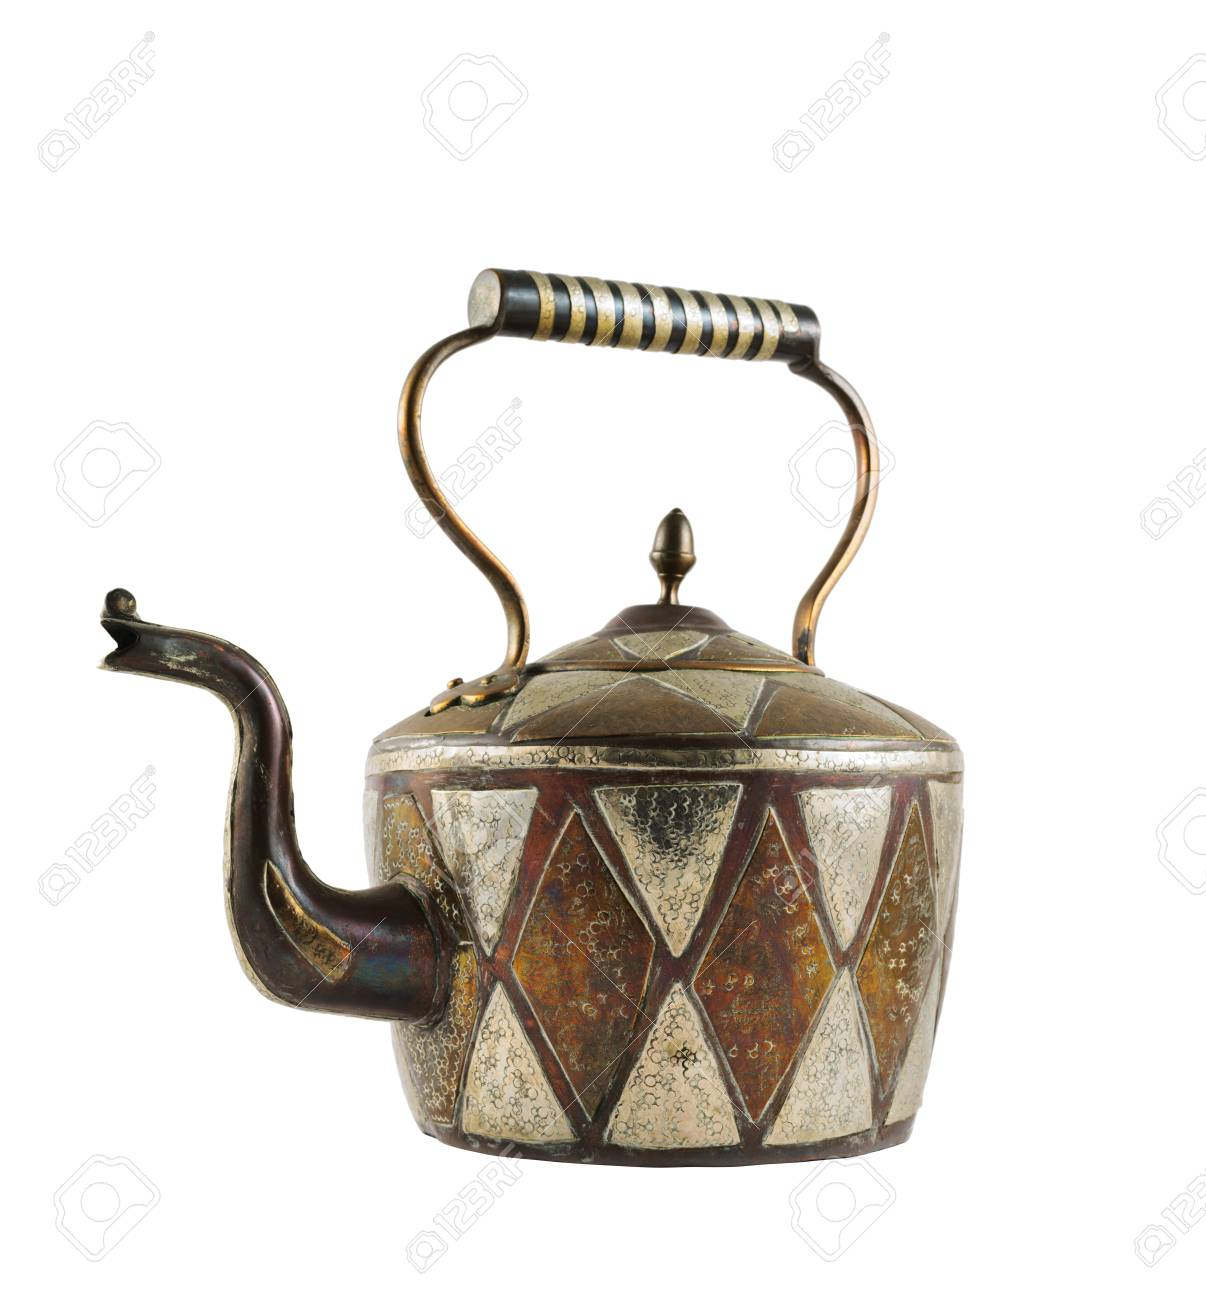 Authentic metal teapot vessel covered with ornaments isolated over white background Stock Photo - 20464388